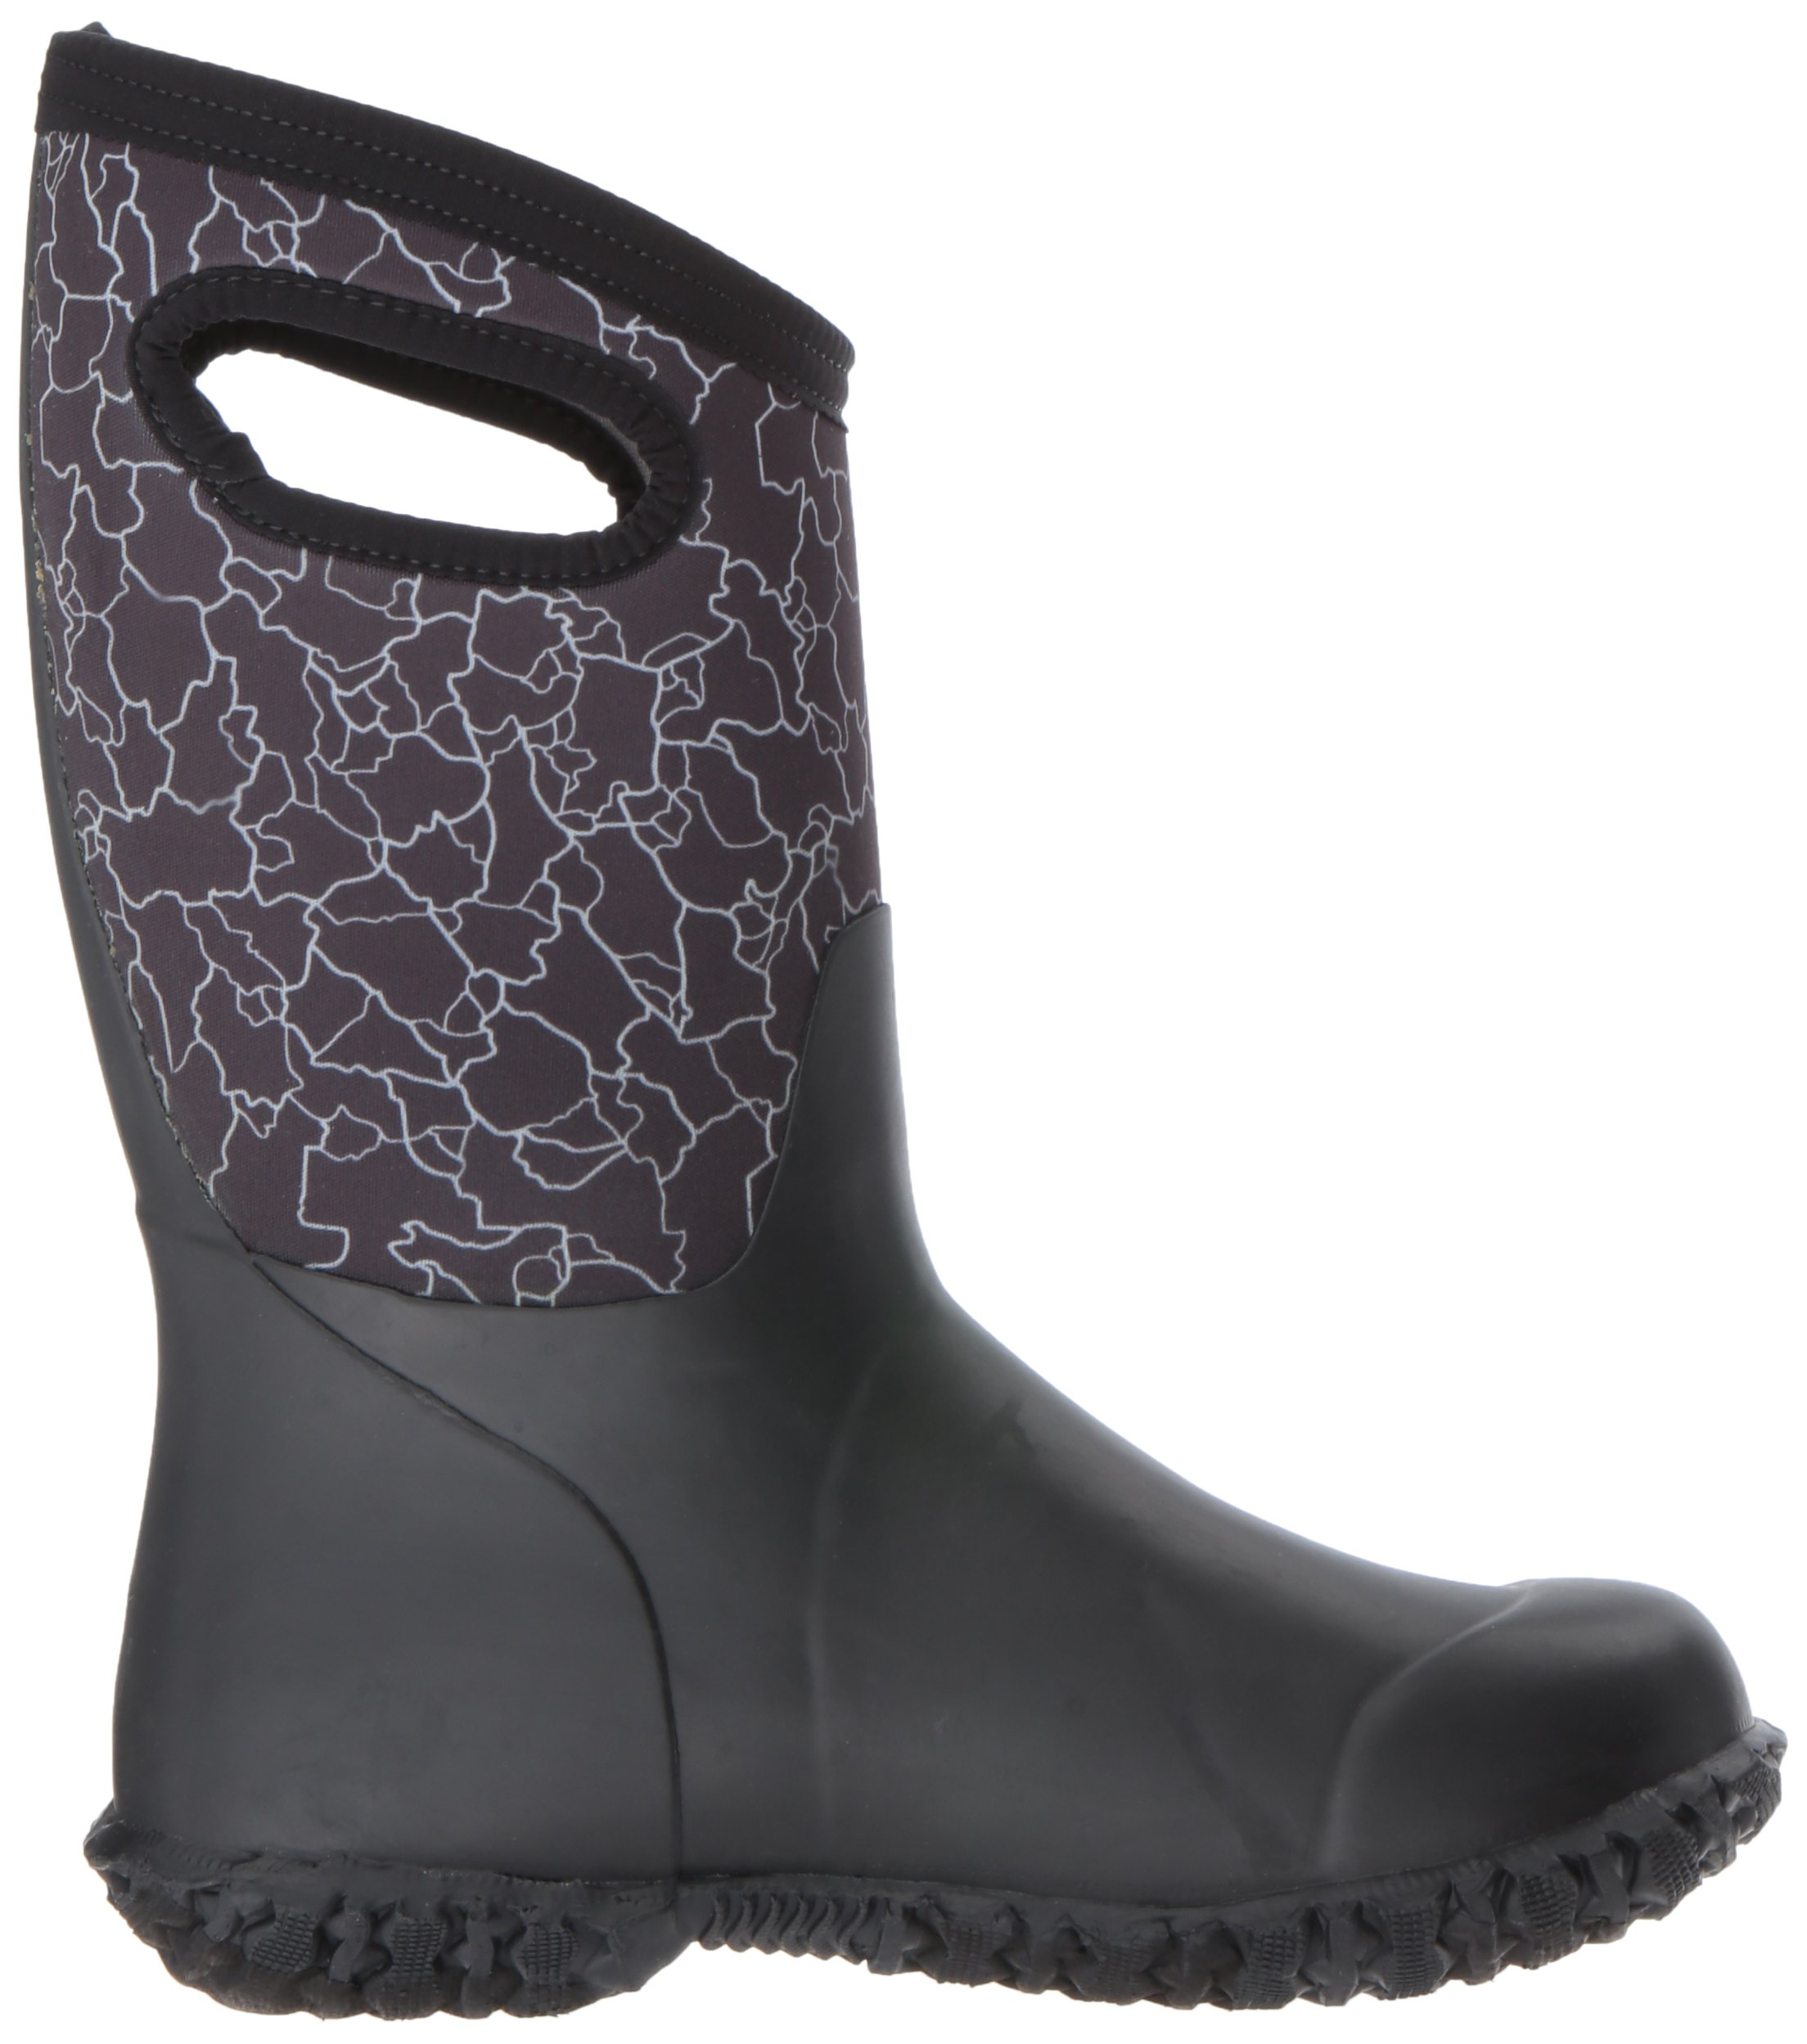 Bogs Durham Kids/Toddler Waterproof Snow Boot for Boys and Girls, Crackle Print/Black/Multi, 12 M US Little Kid by Bogs (Image #7)